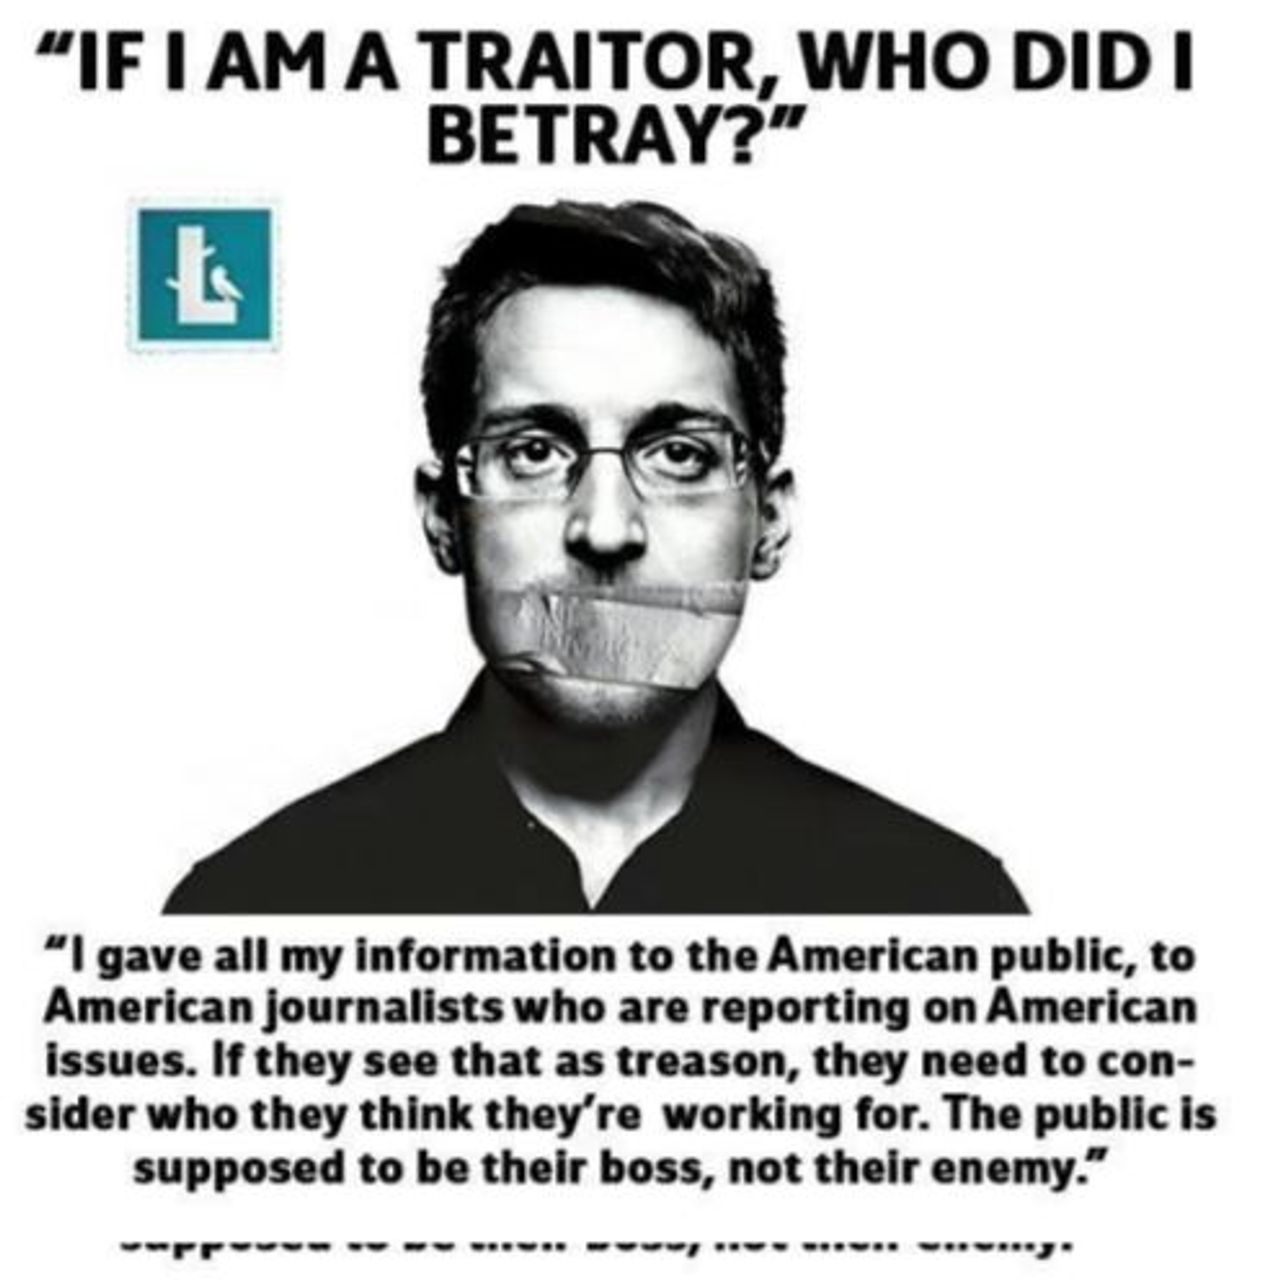 Edward Snowden, another example of what Facebook and New Knowledge call 'Russian Propaganda'